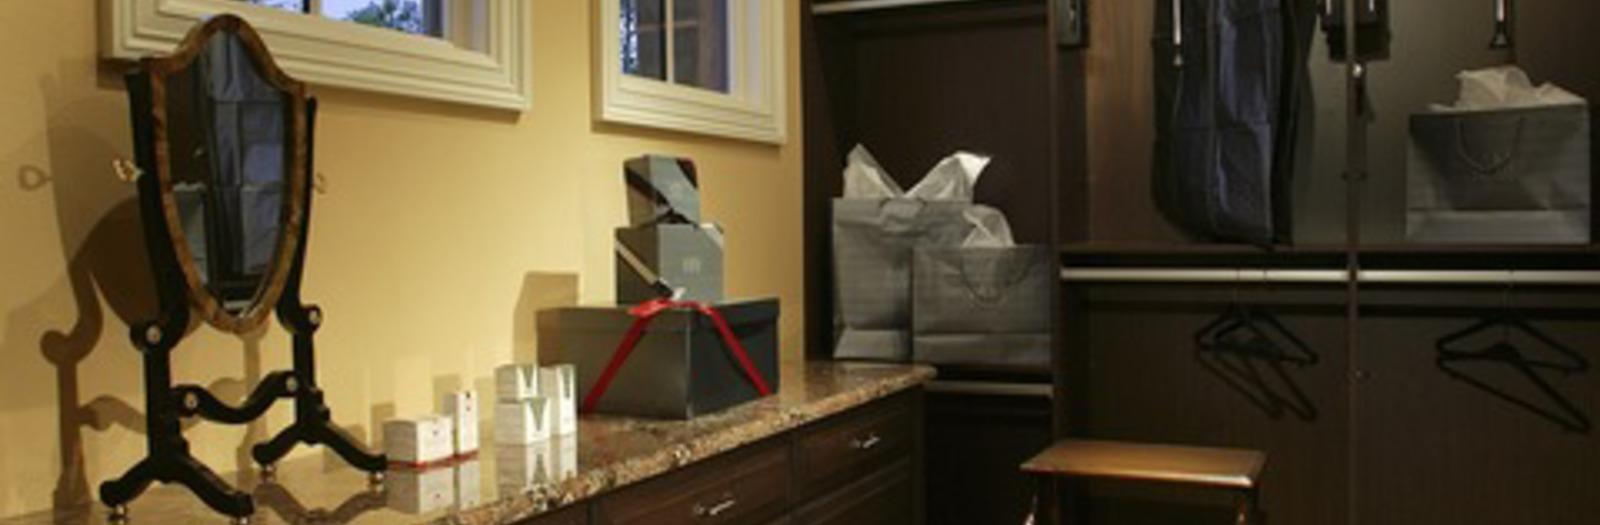 custom kitchen cabinets richmond va bakers rack ideas for home design, decorating and remodeling | designmine